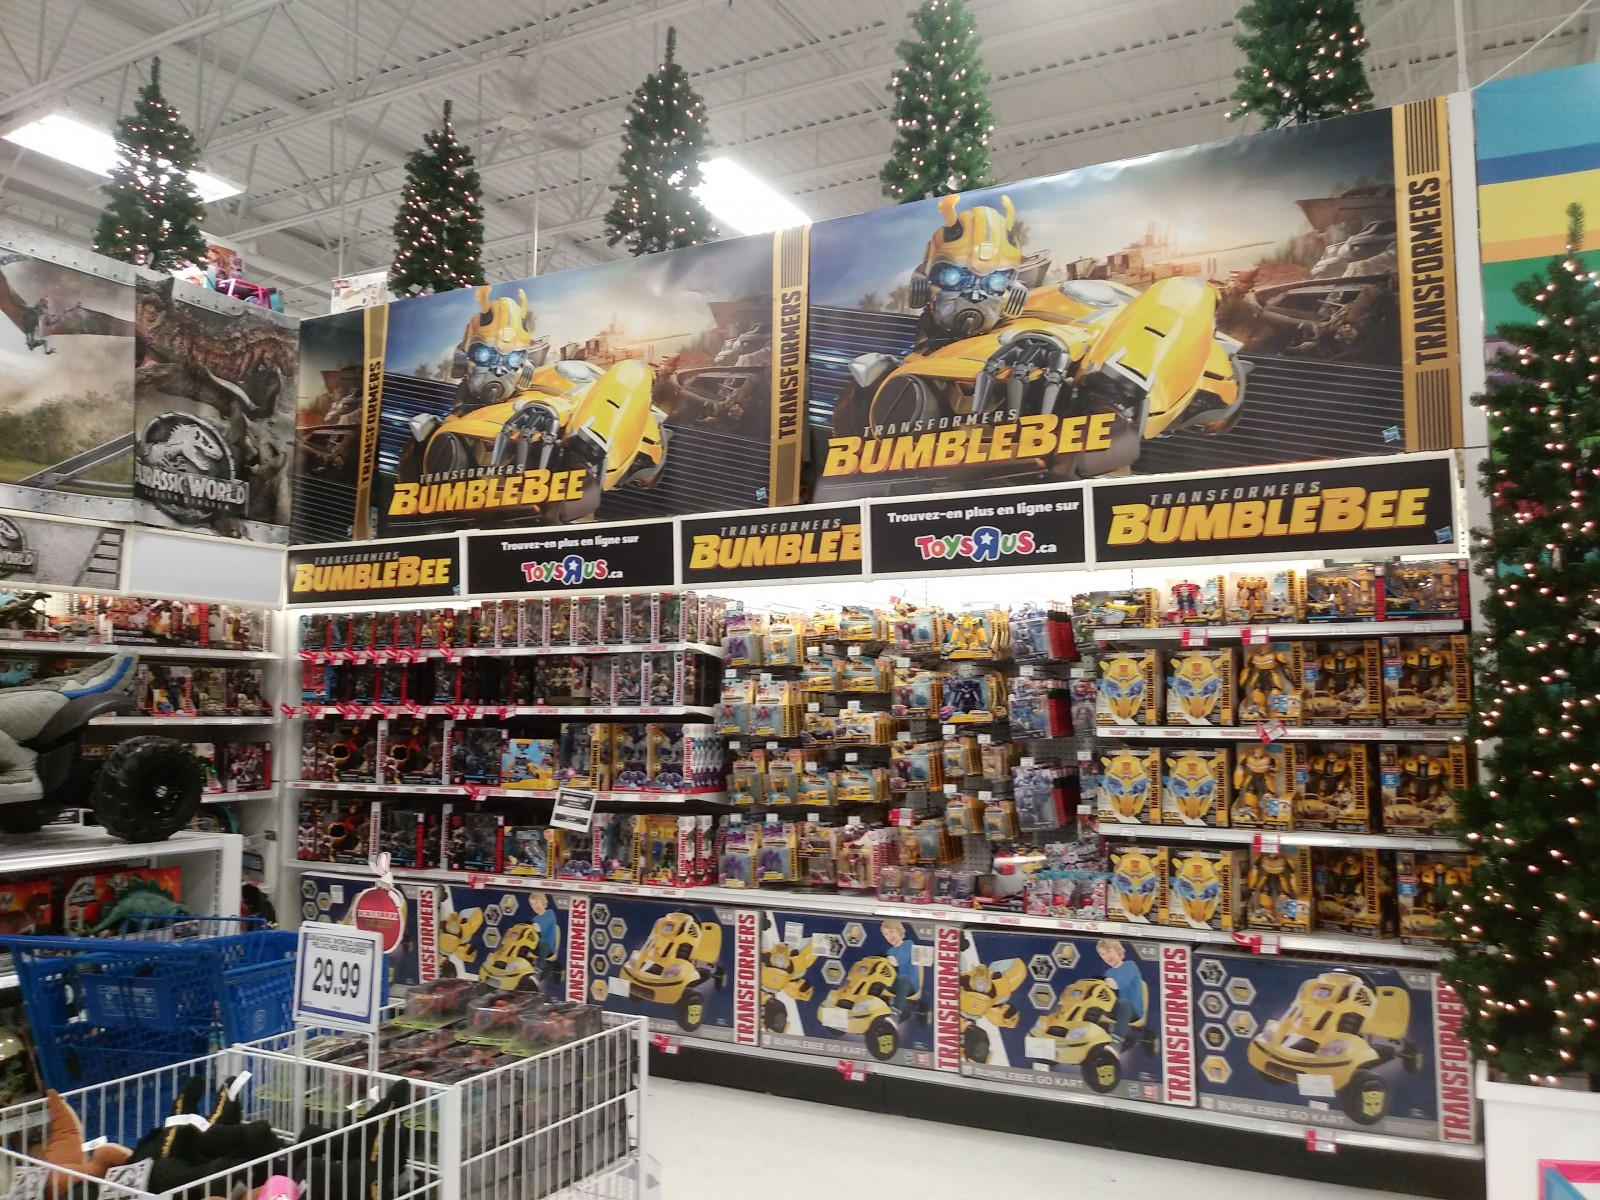 Transformers News: Huge Display of Bumblebee Toyline at Toysrus Stores in Canada